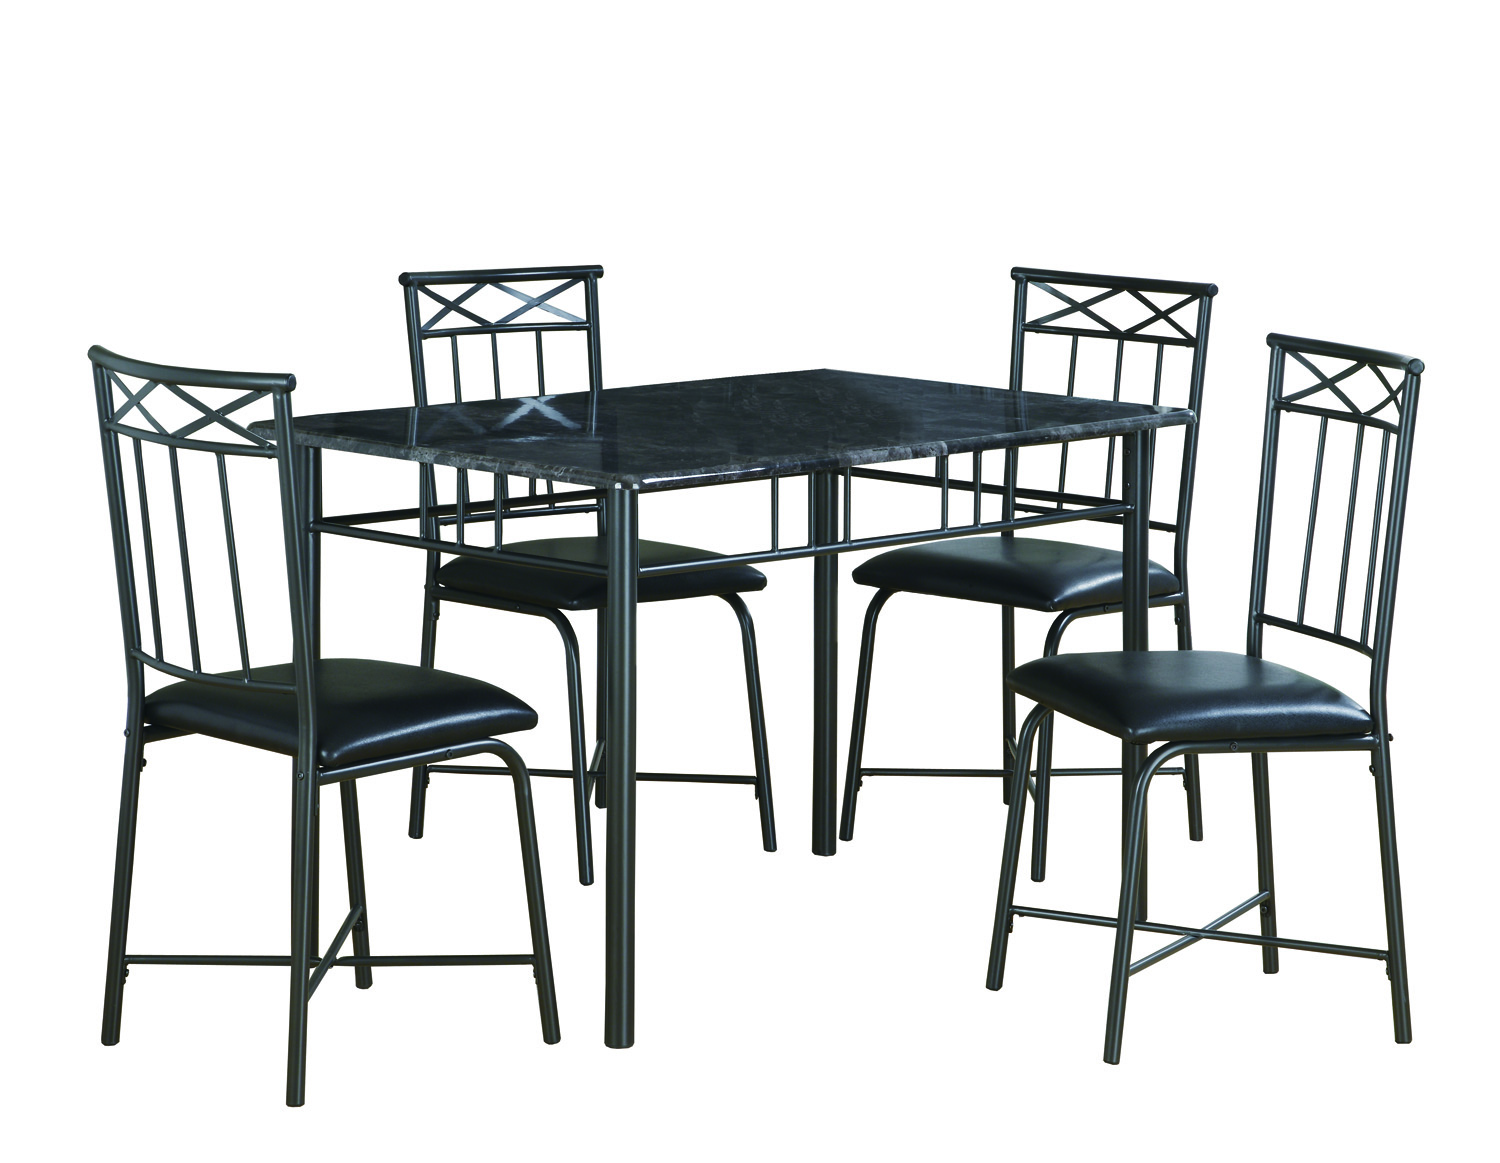 Dining Set - 5 Pieces Set / Grey Marble / Charcoal Metal